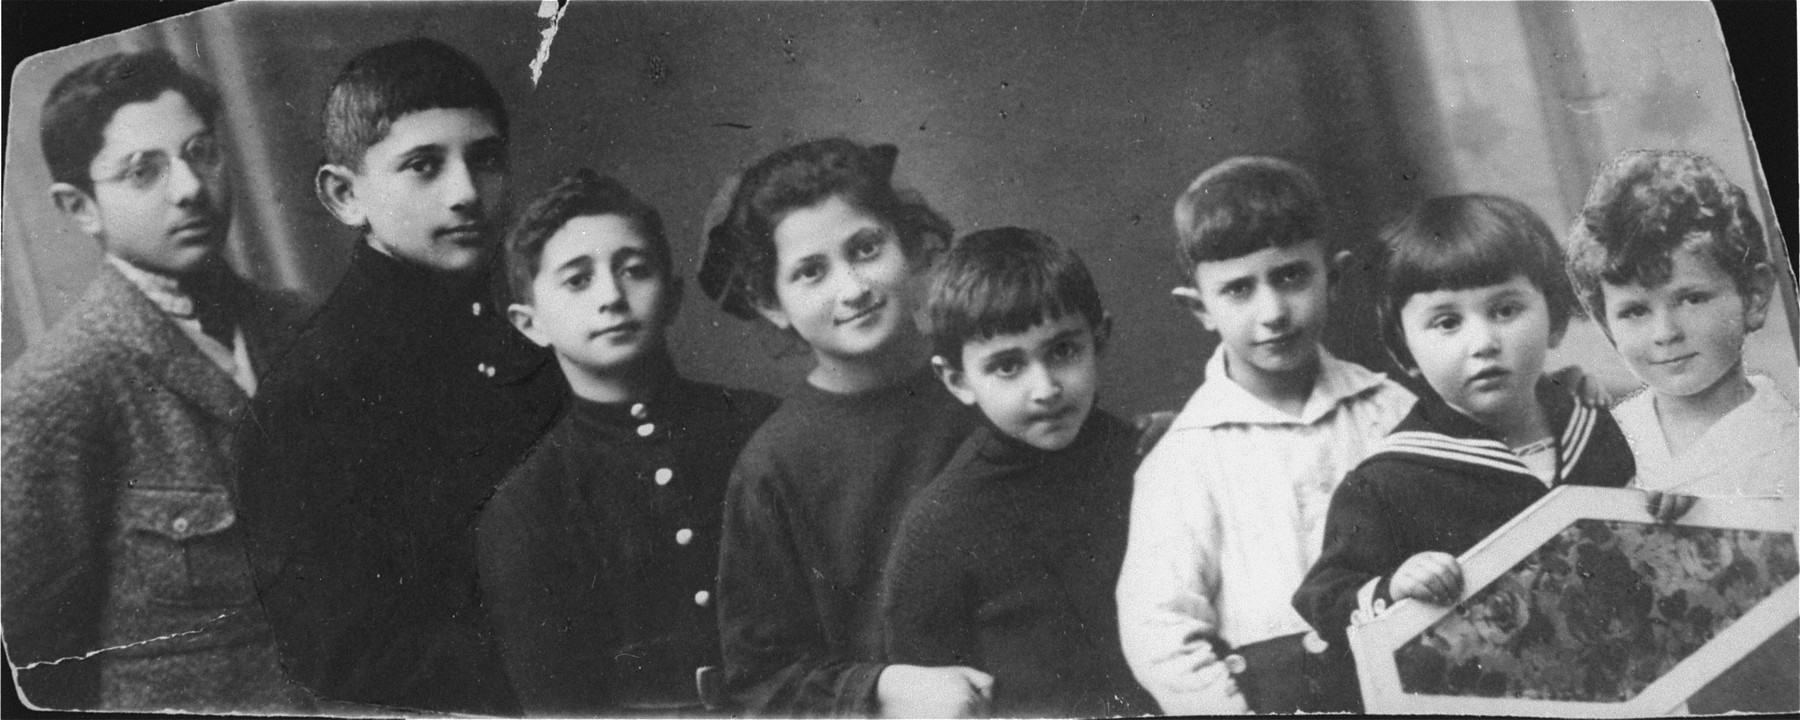 Potrait of the first cousins of the Bobrow family.